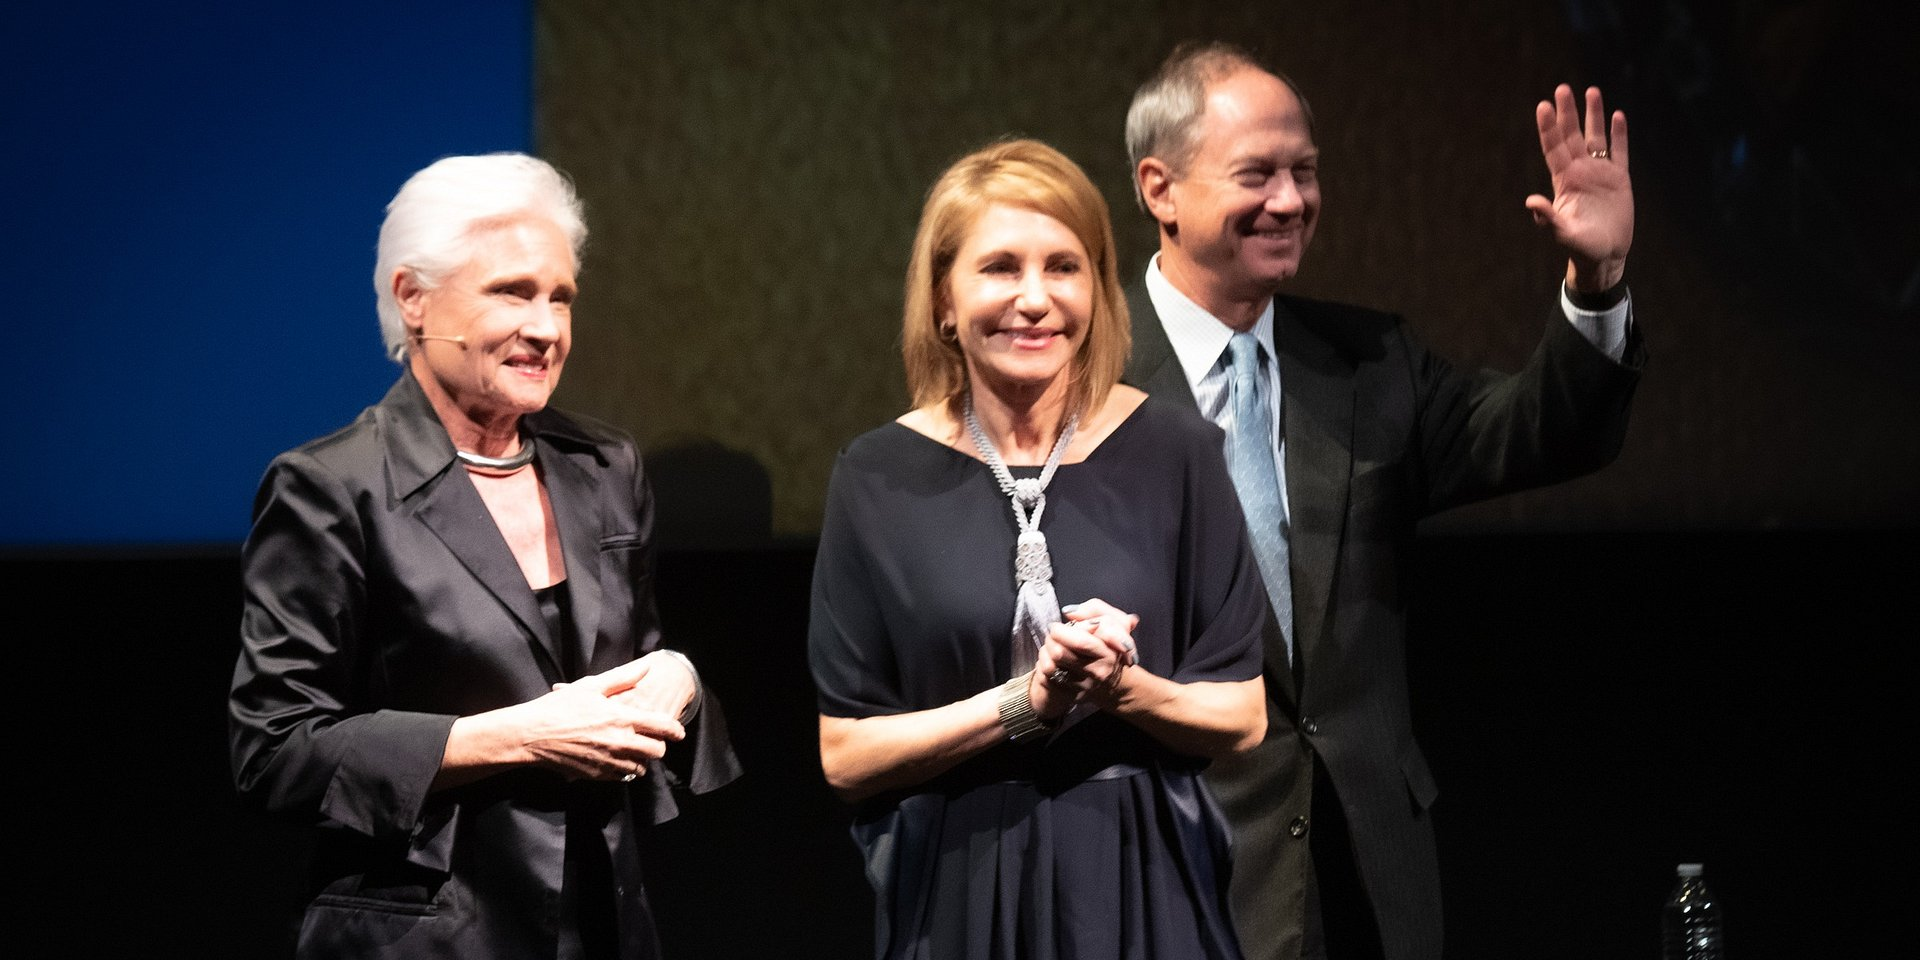 Coldwell Banker's Joyce Rey Helps Raise $225,000 at The Art of Diplomacy Event for L.A. Theater Works